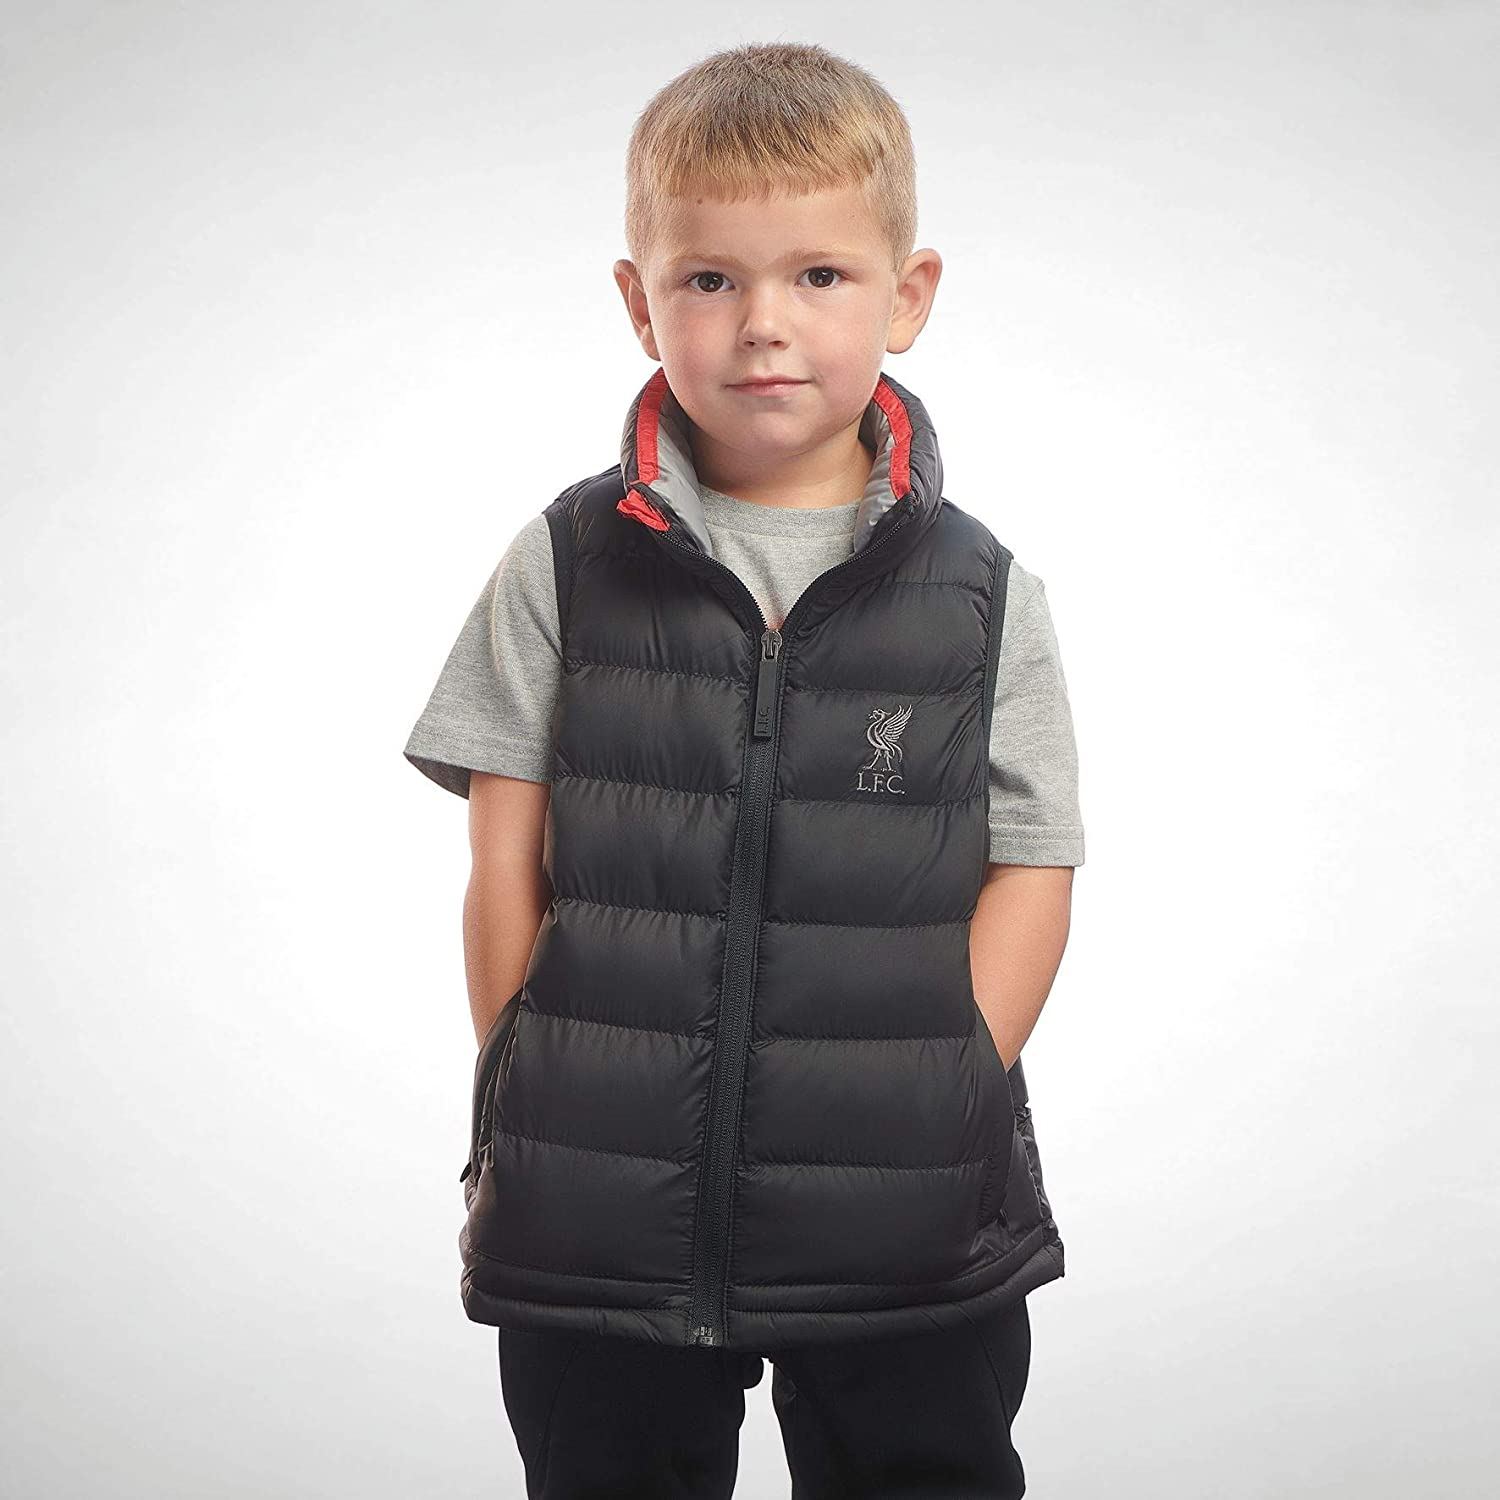 Liverpool FC Black Boys Soccer Gilet AW 18/19 LFC Official